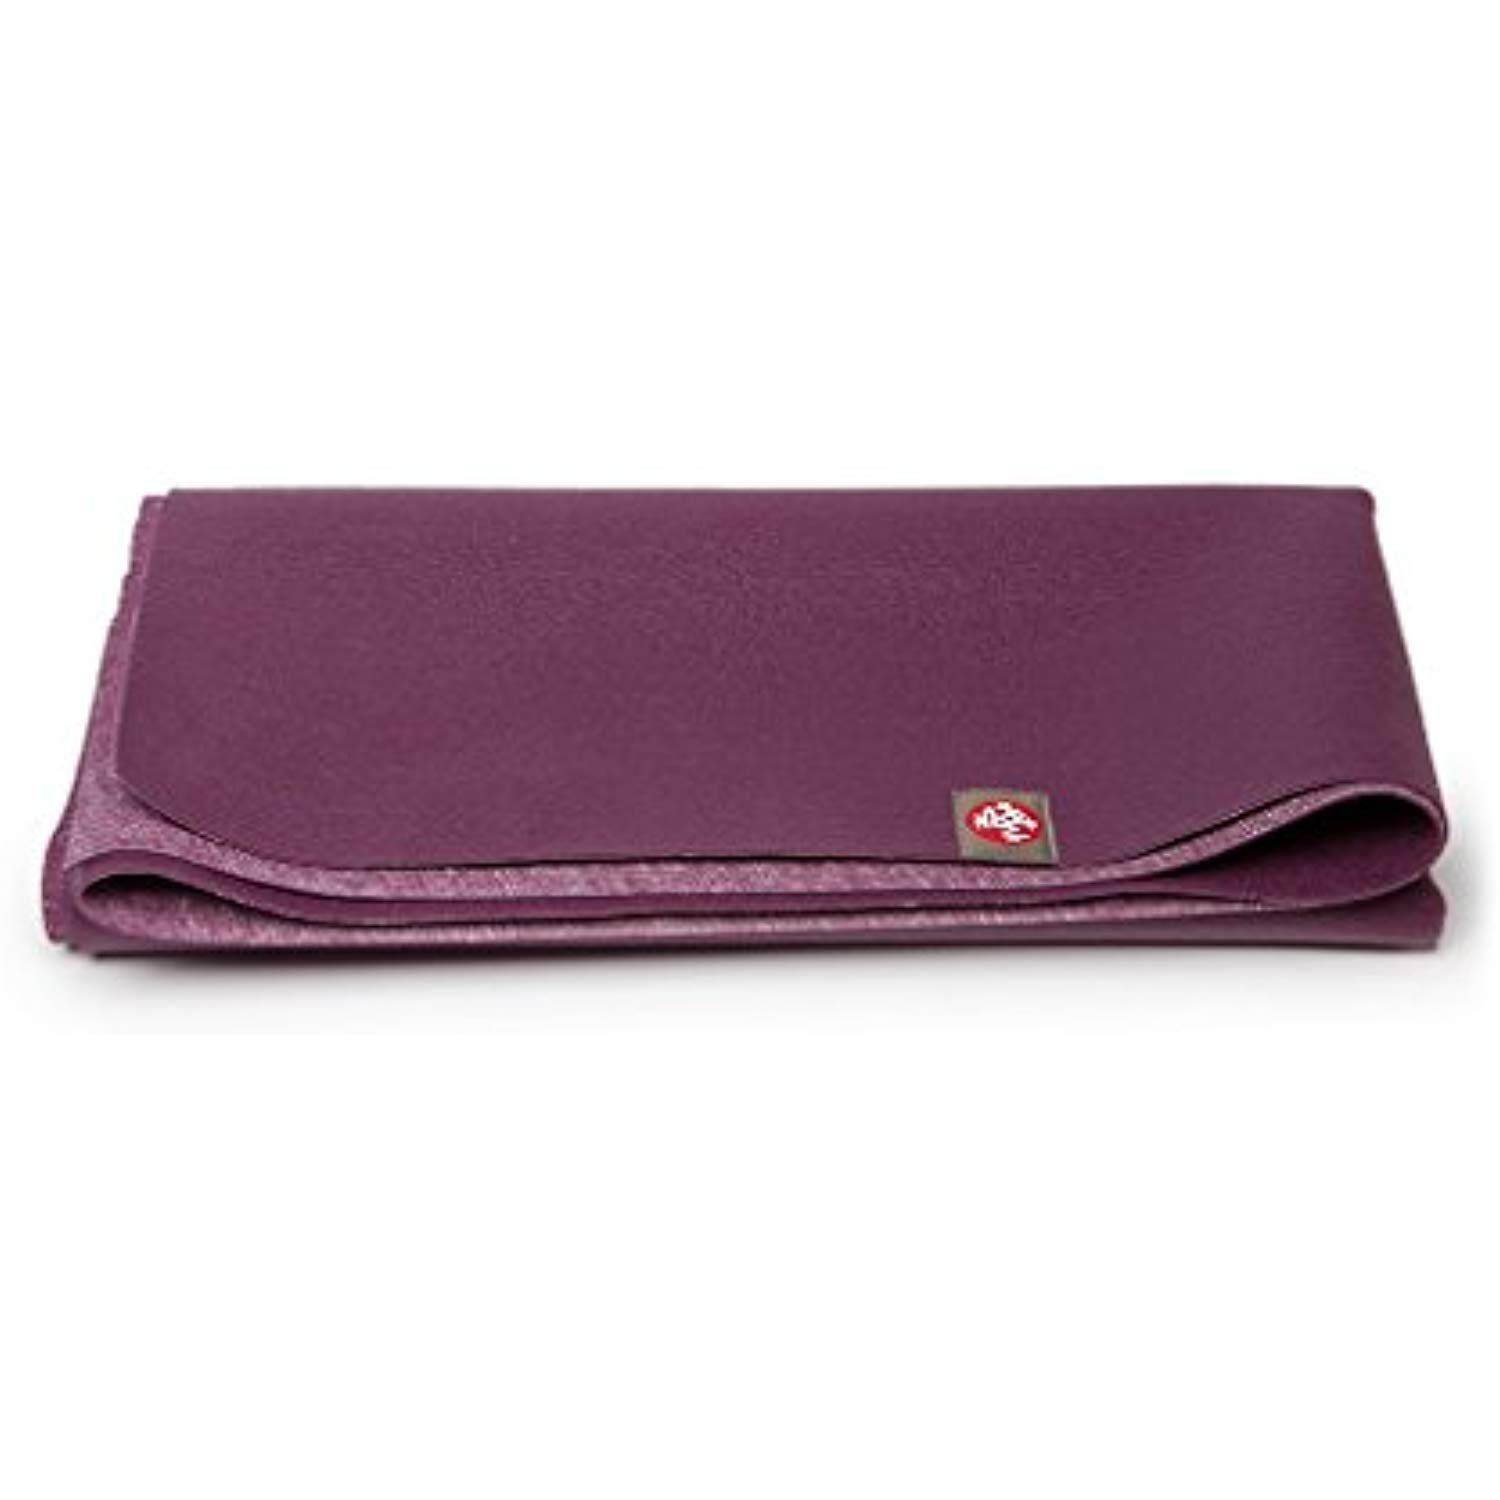 Manduka Eko Superlite Travel Yoga Mat Check Out This Great Product This Is An Affiliate Link Yoga Travel Yoga Mat Manduka Yoga